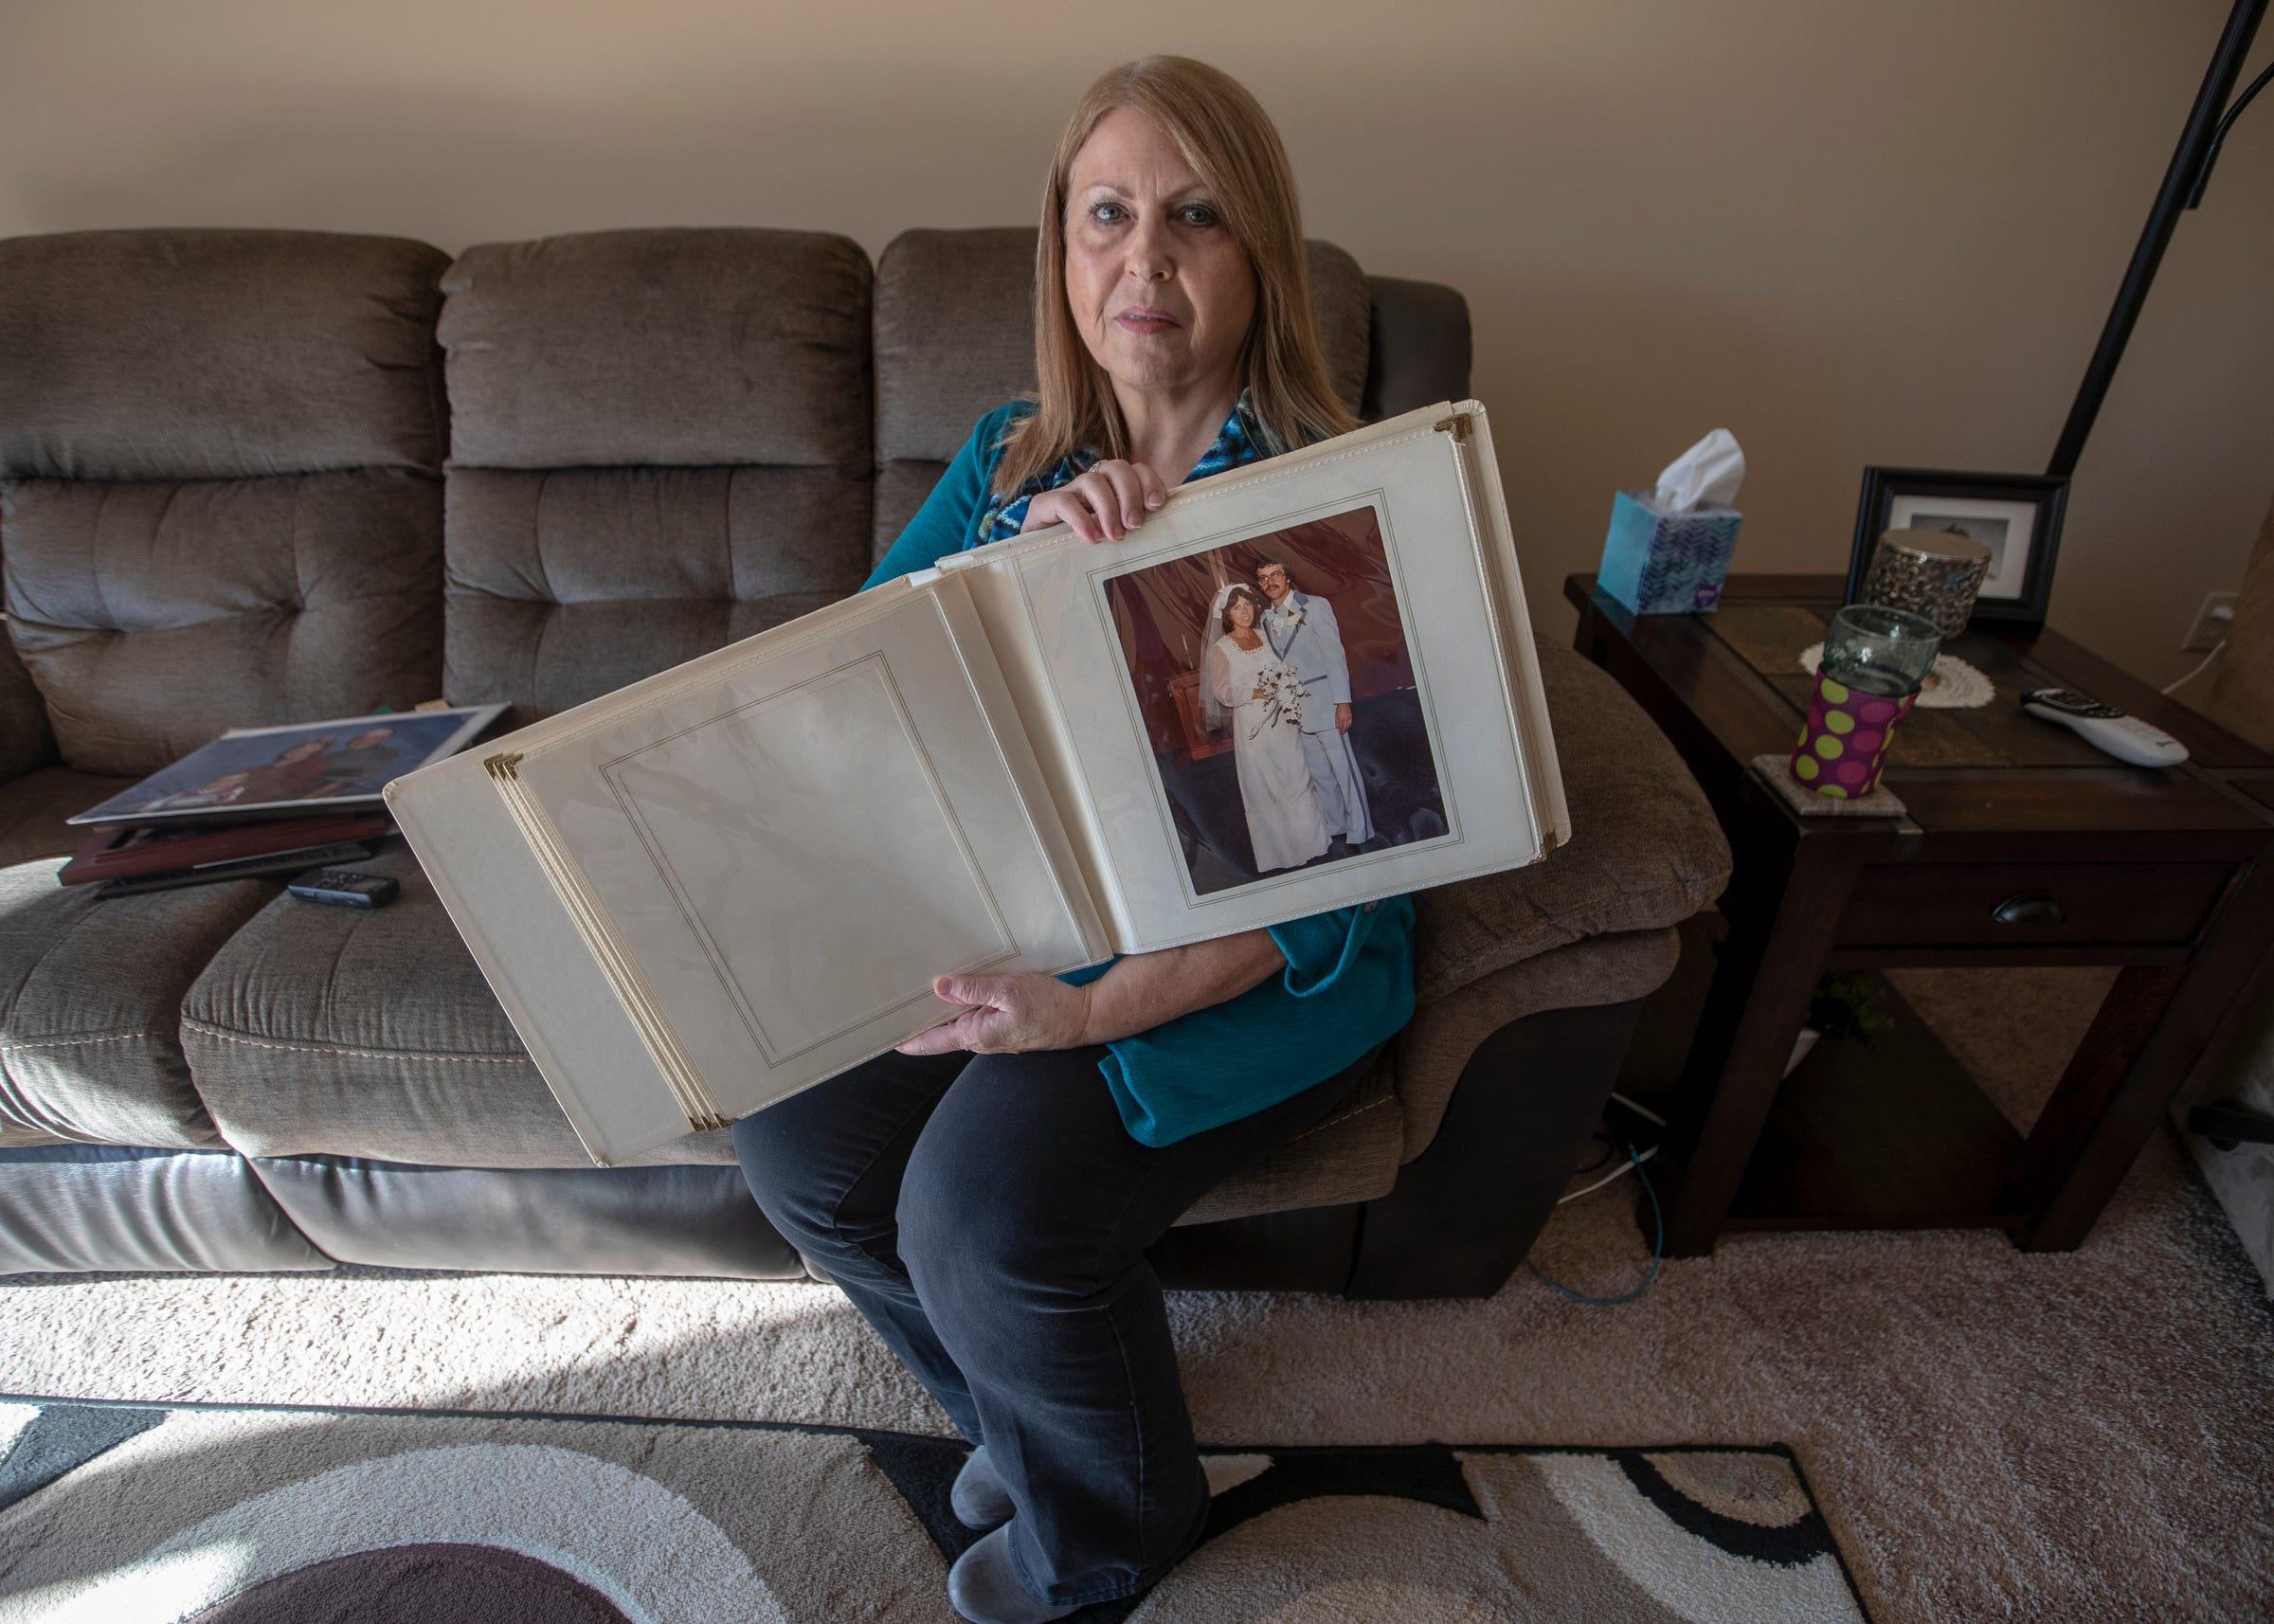 Cathy King holds an album of wedding pictures with her husband, Greg Robinson, on Dec. 4, 2019. Robinson died in 2015 after complications that allegedly arose from improper care.